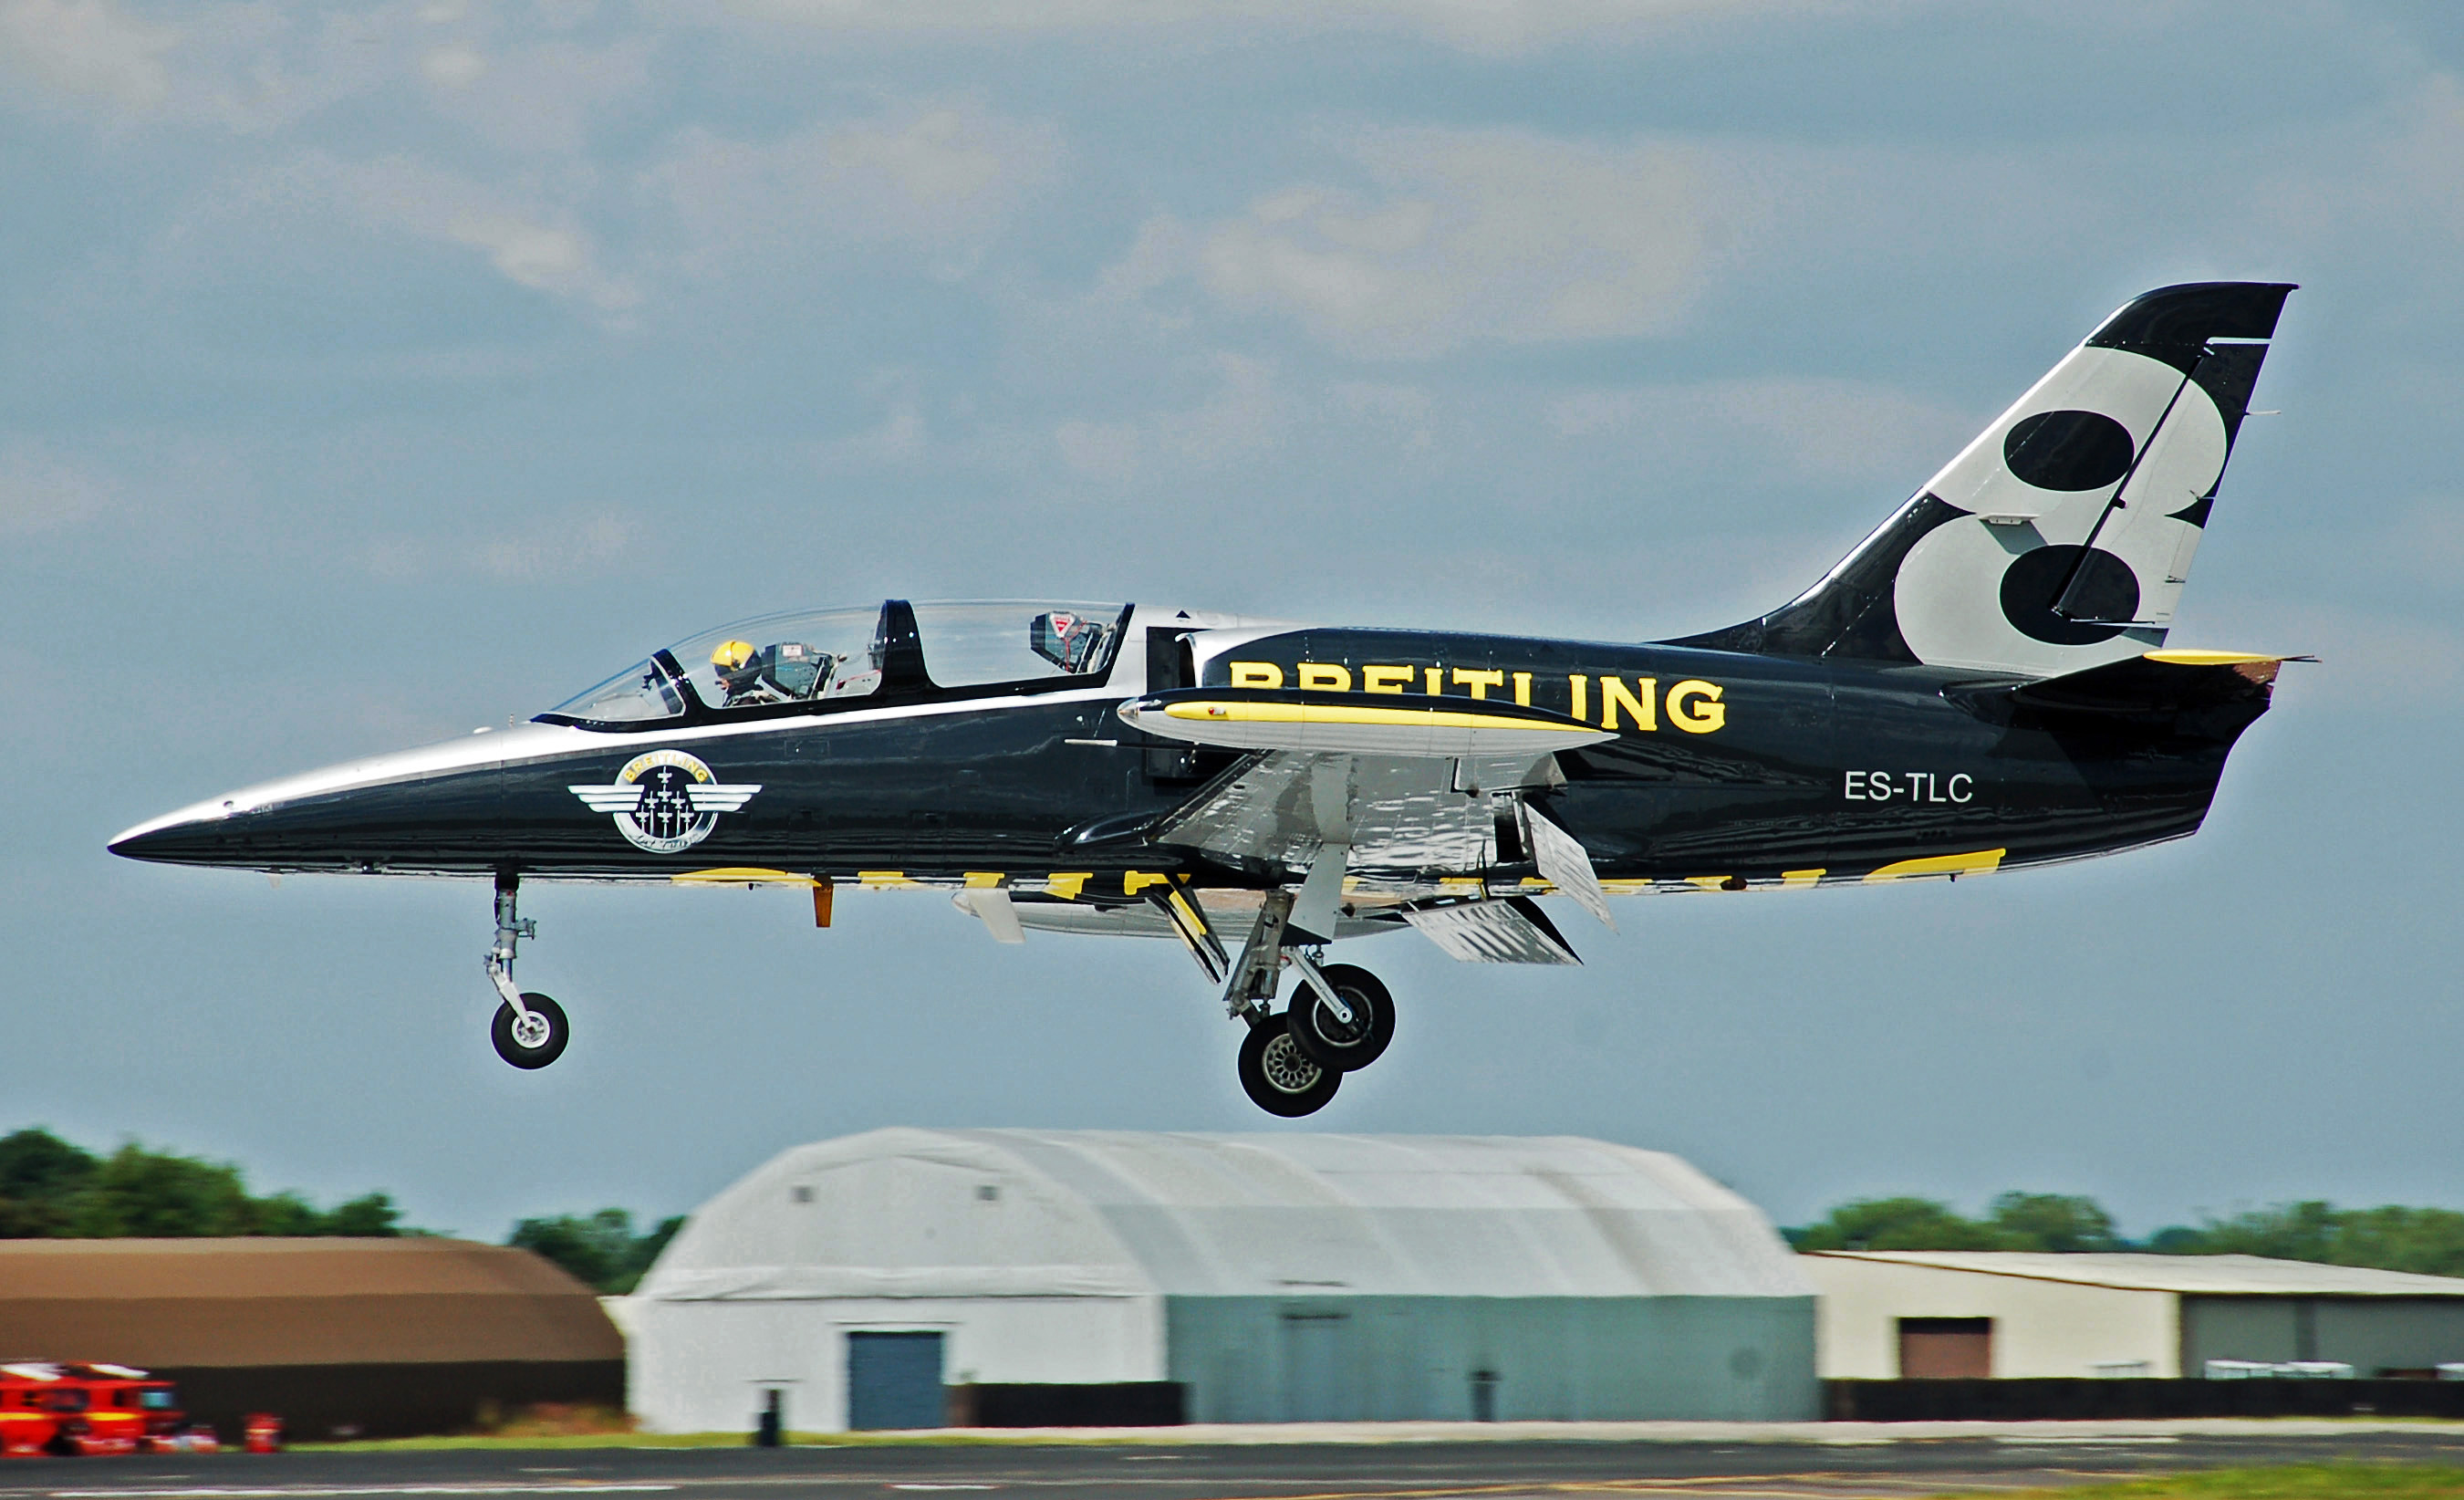 Breitling L 39 Albatros at Fairford RIAT 10July2014 arp